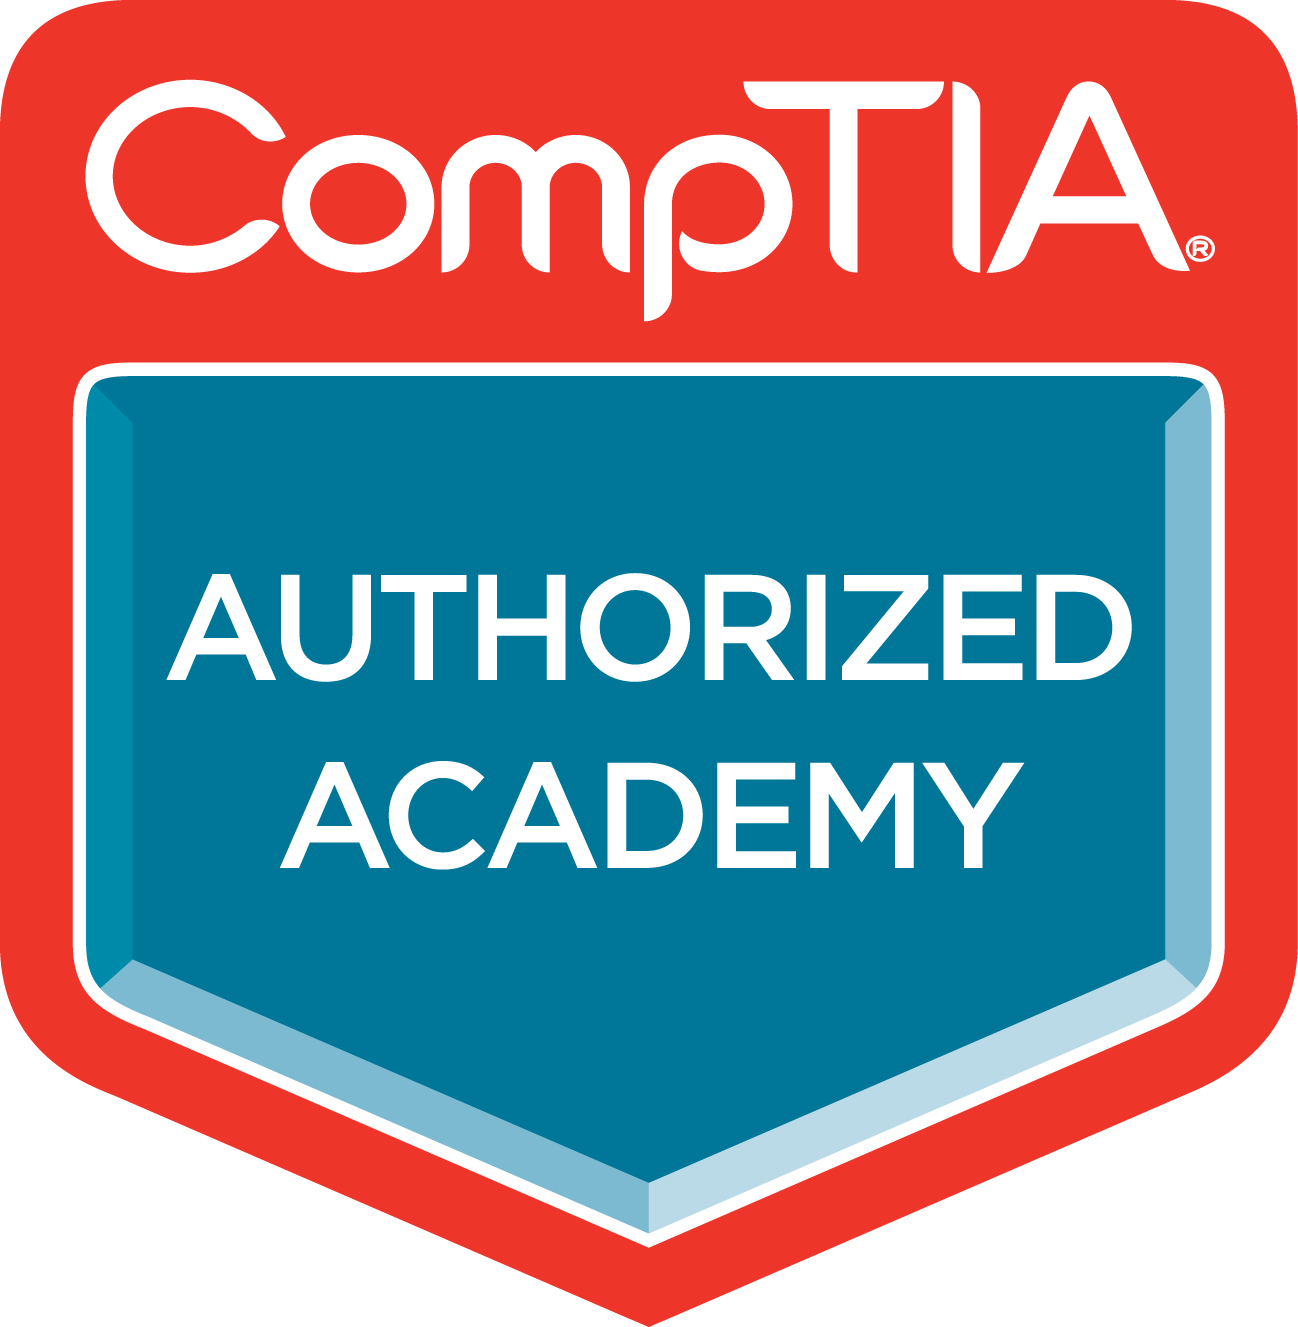 Comptia Sbcs Global Learning Institute